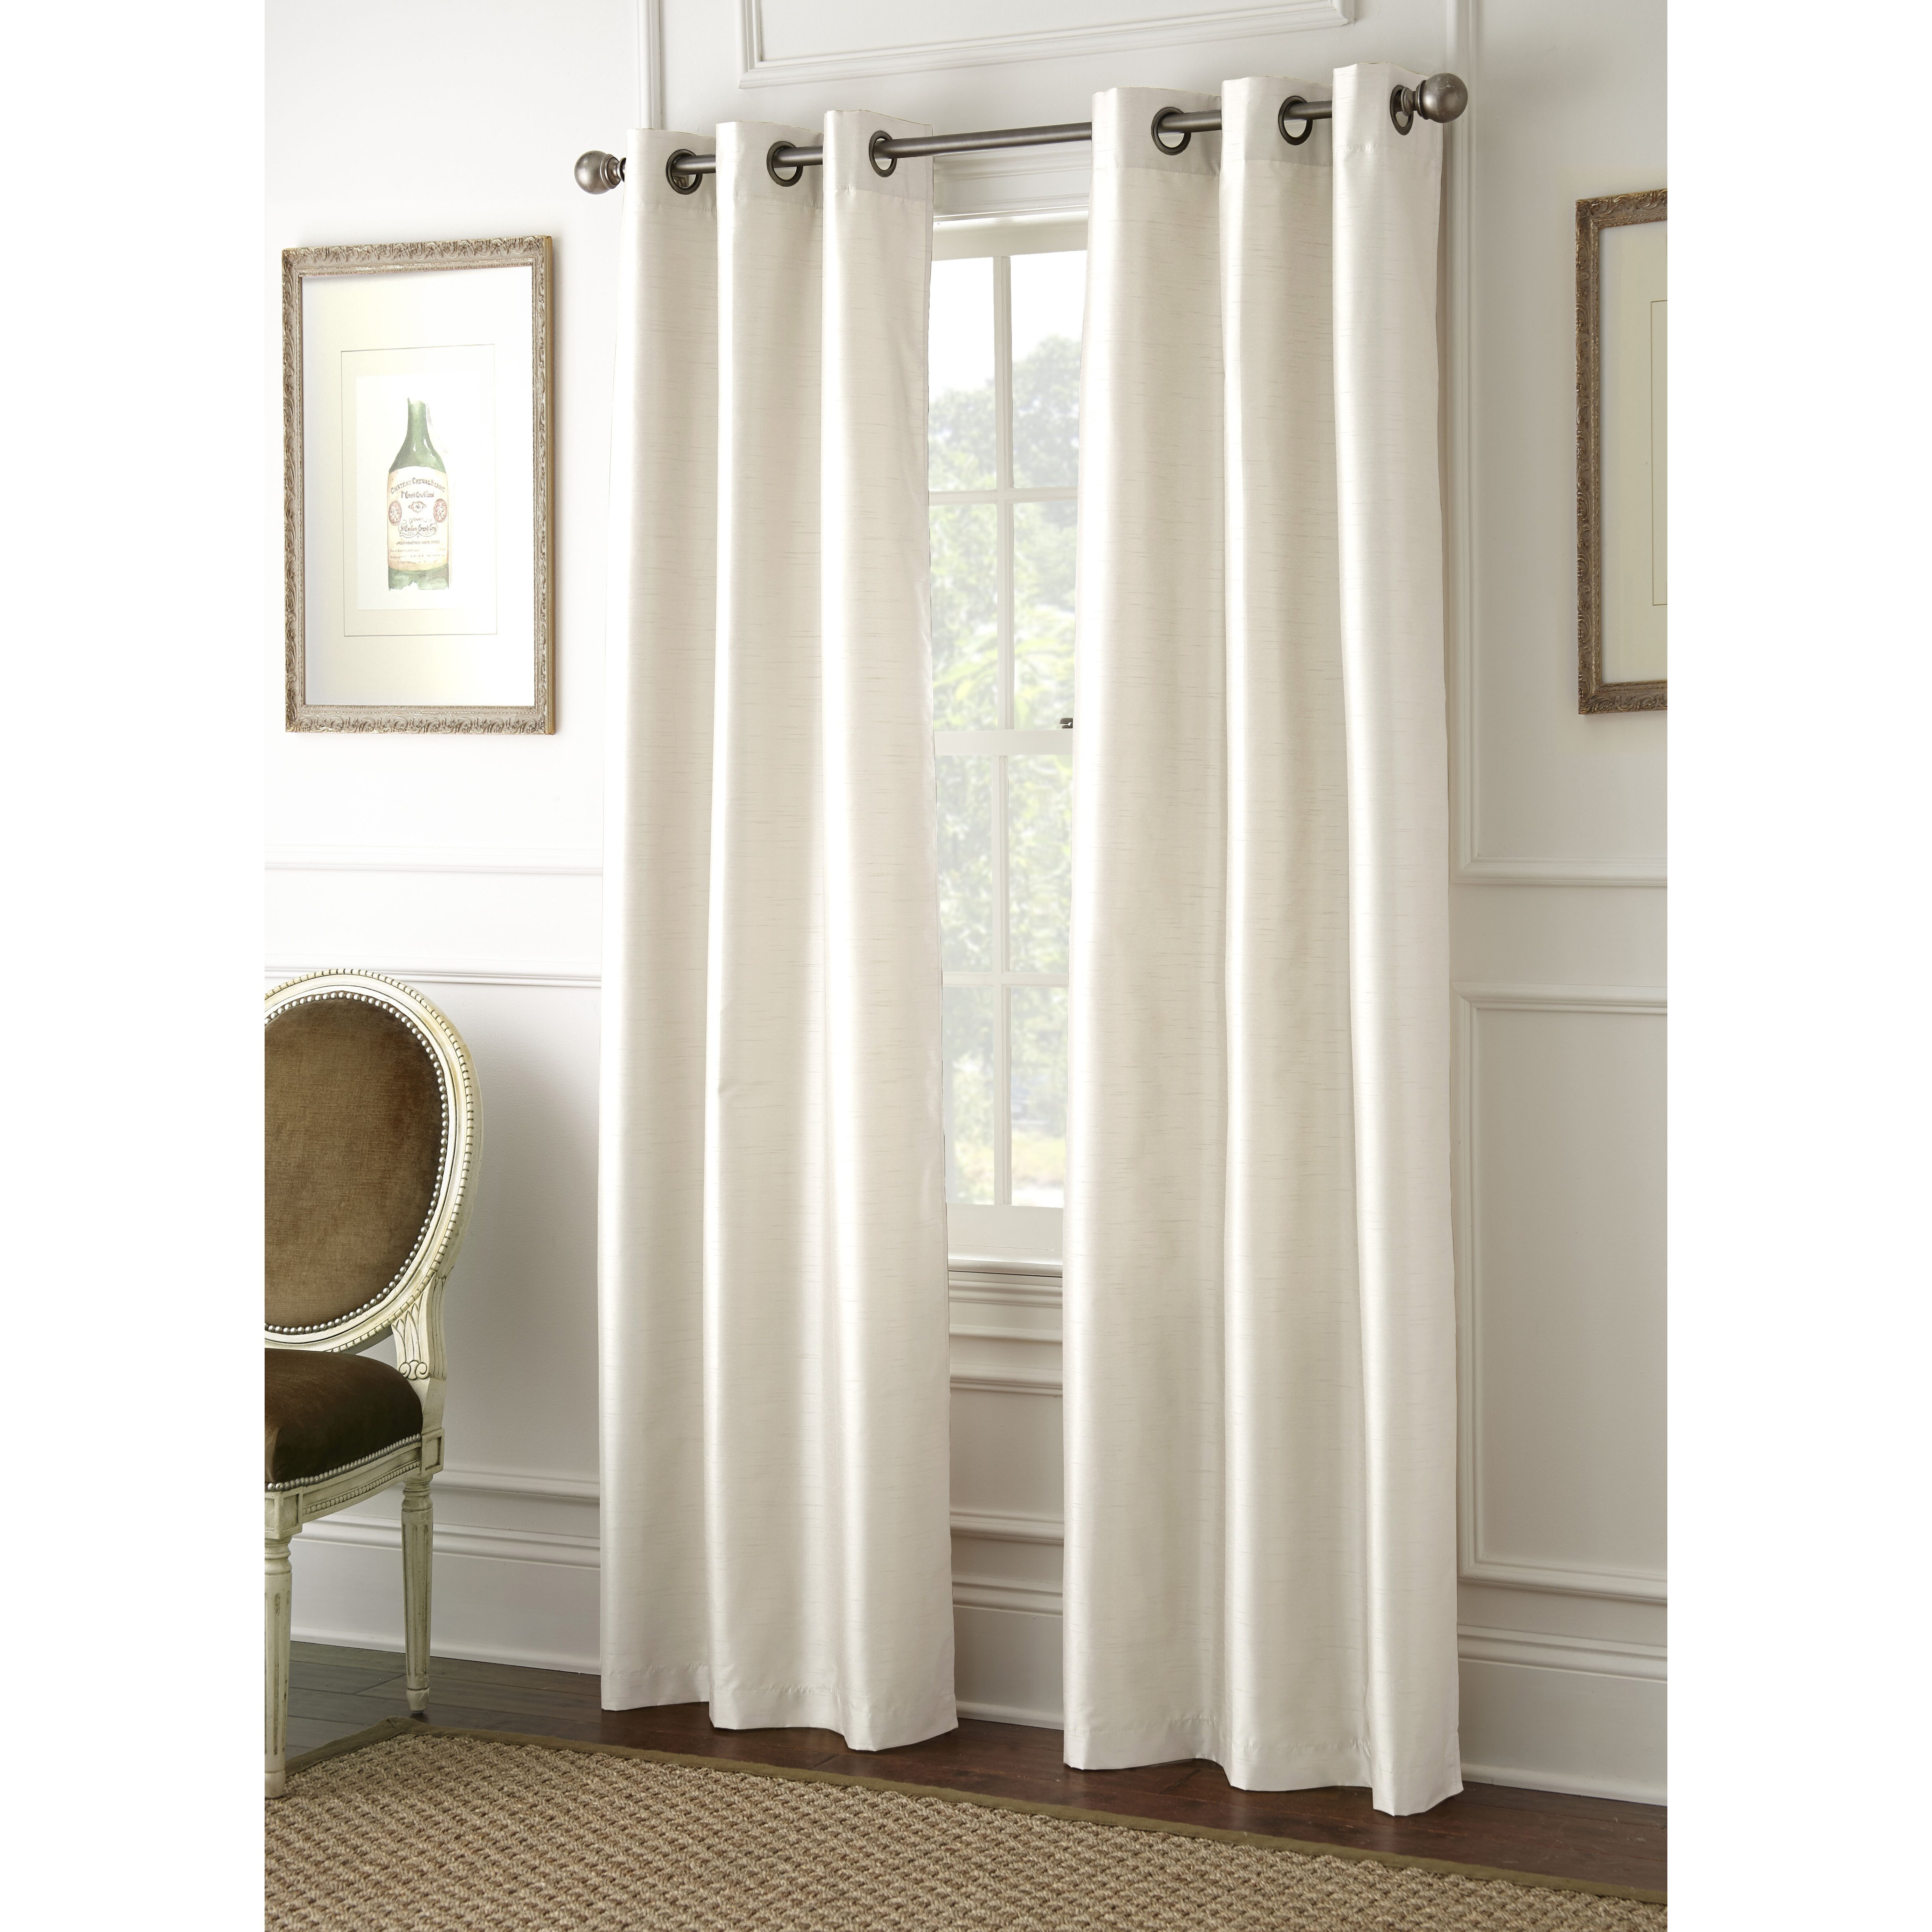 Flair Curtains And Blinds Review